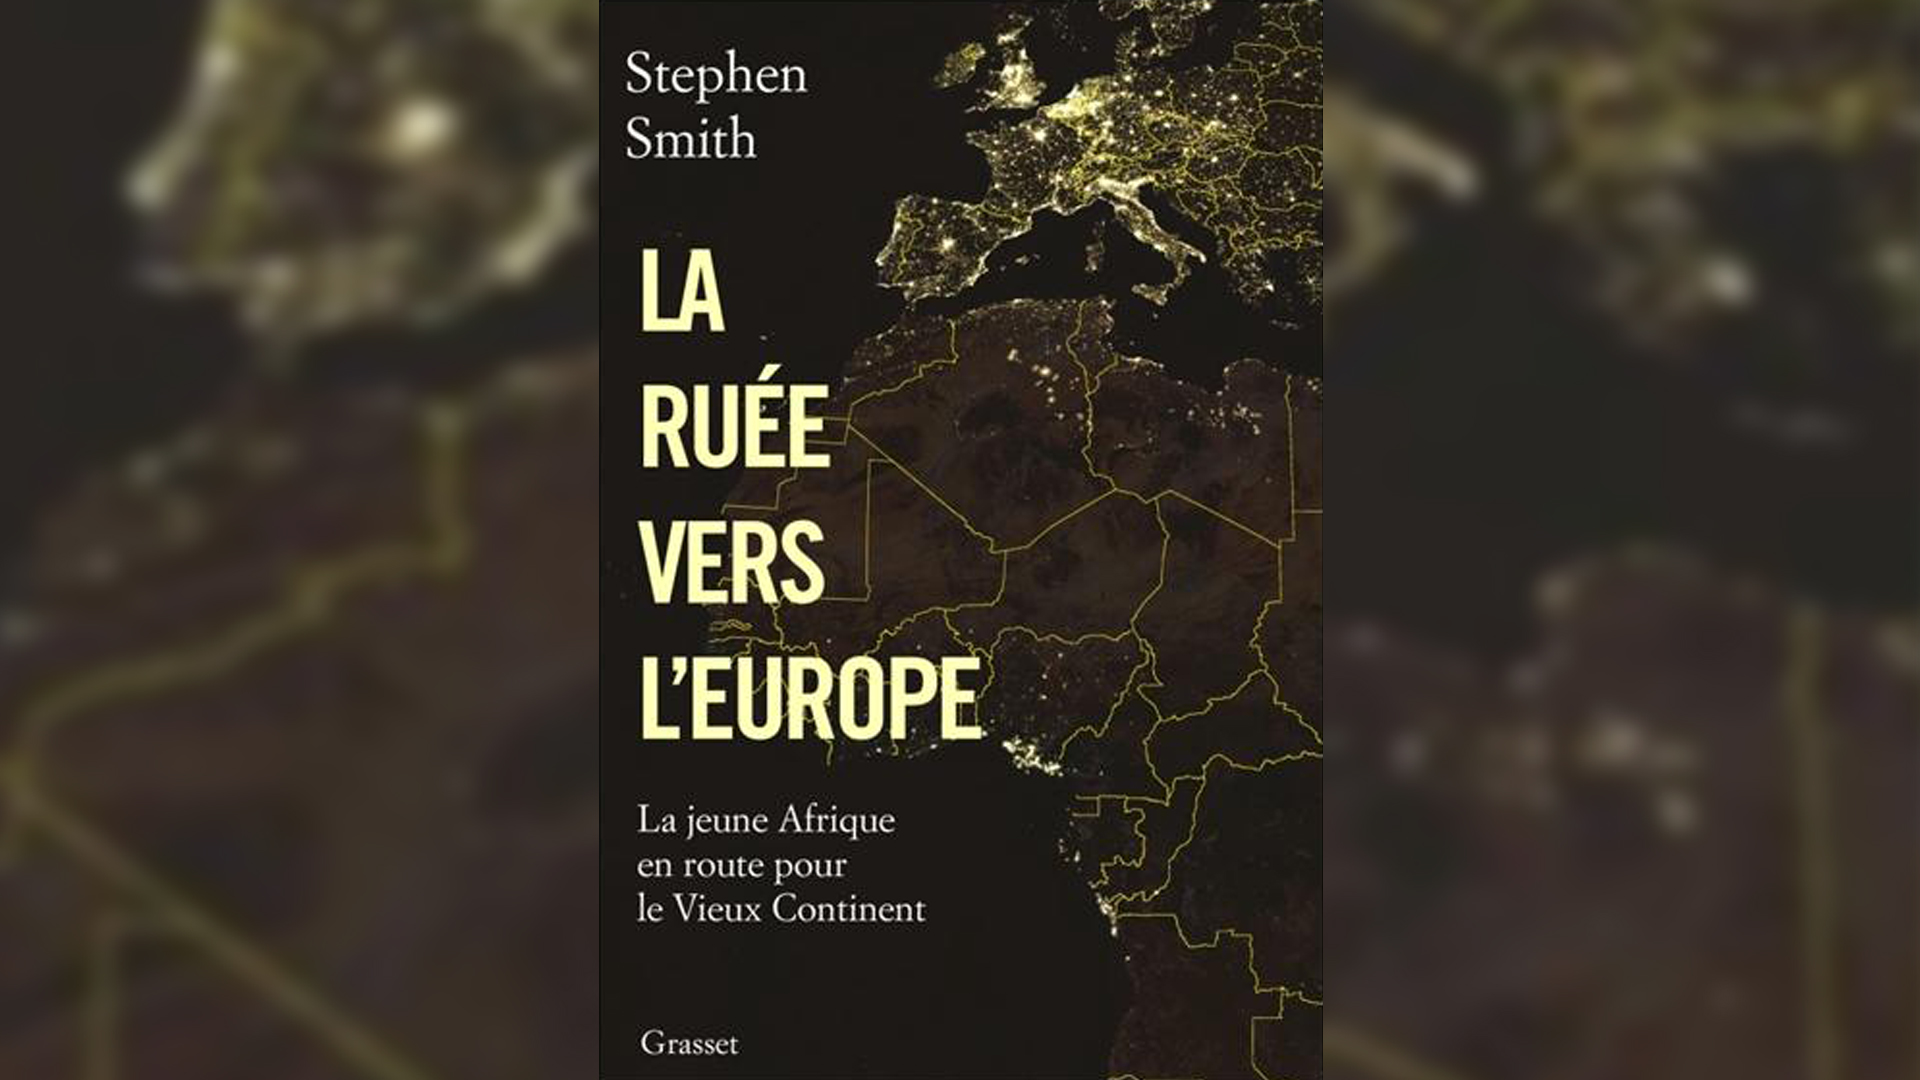 La ruée vers l'Europe par Stephen Smith